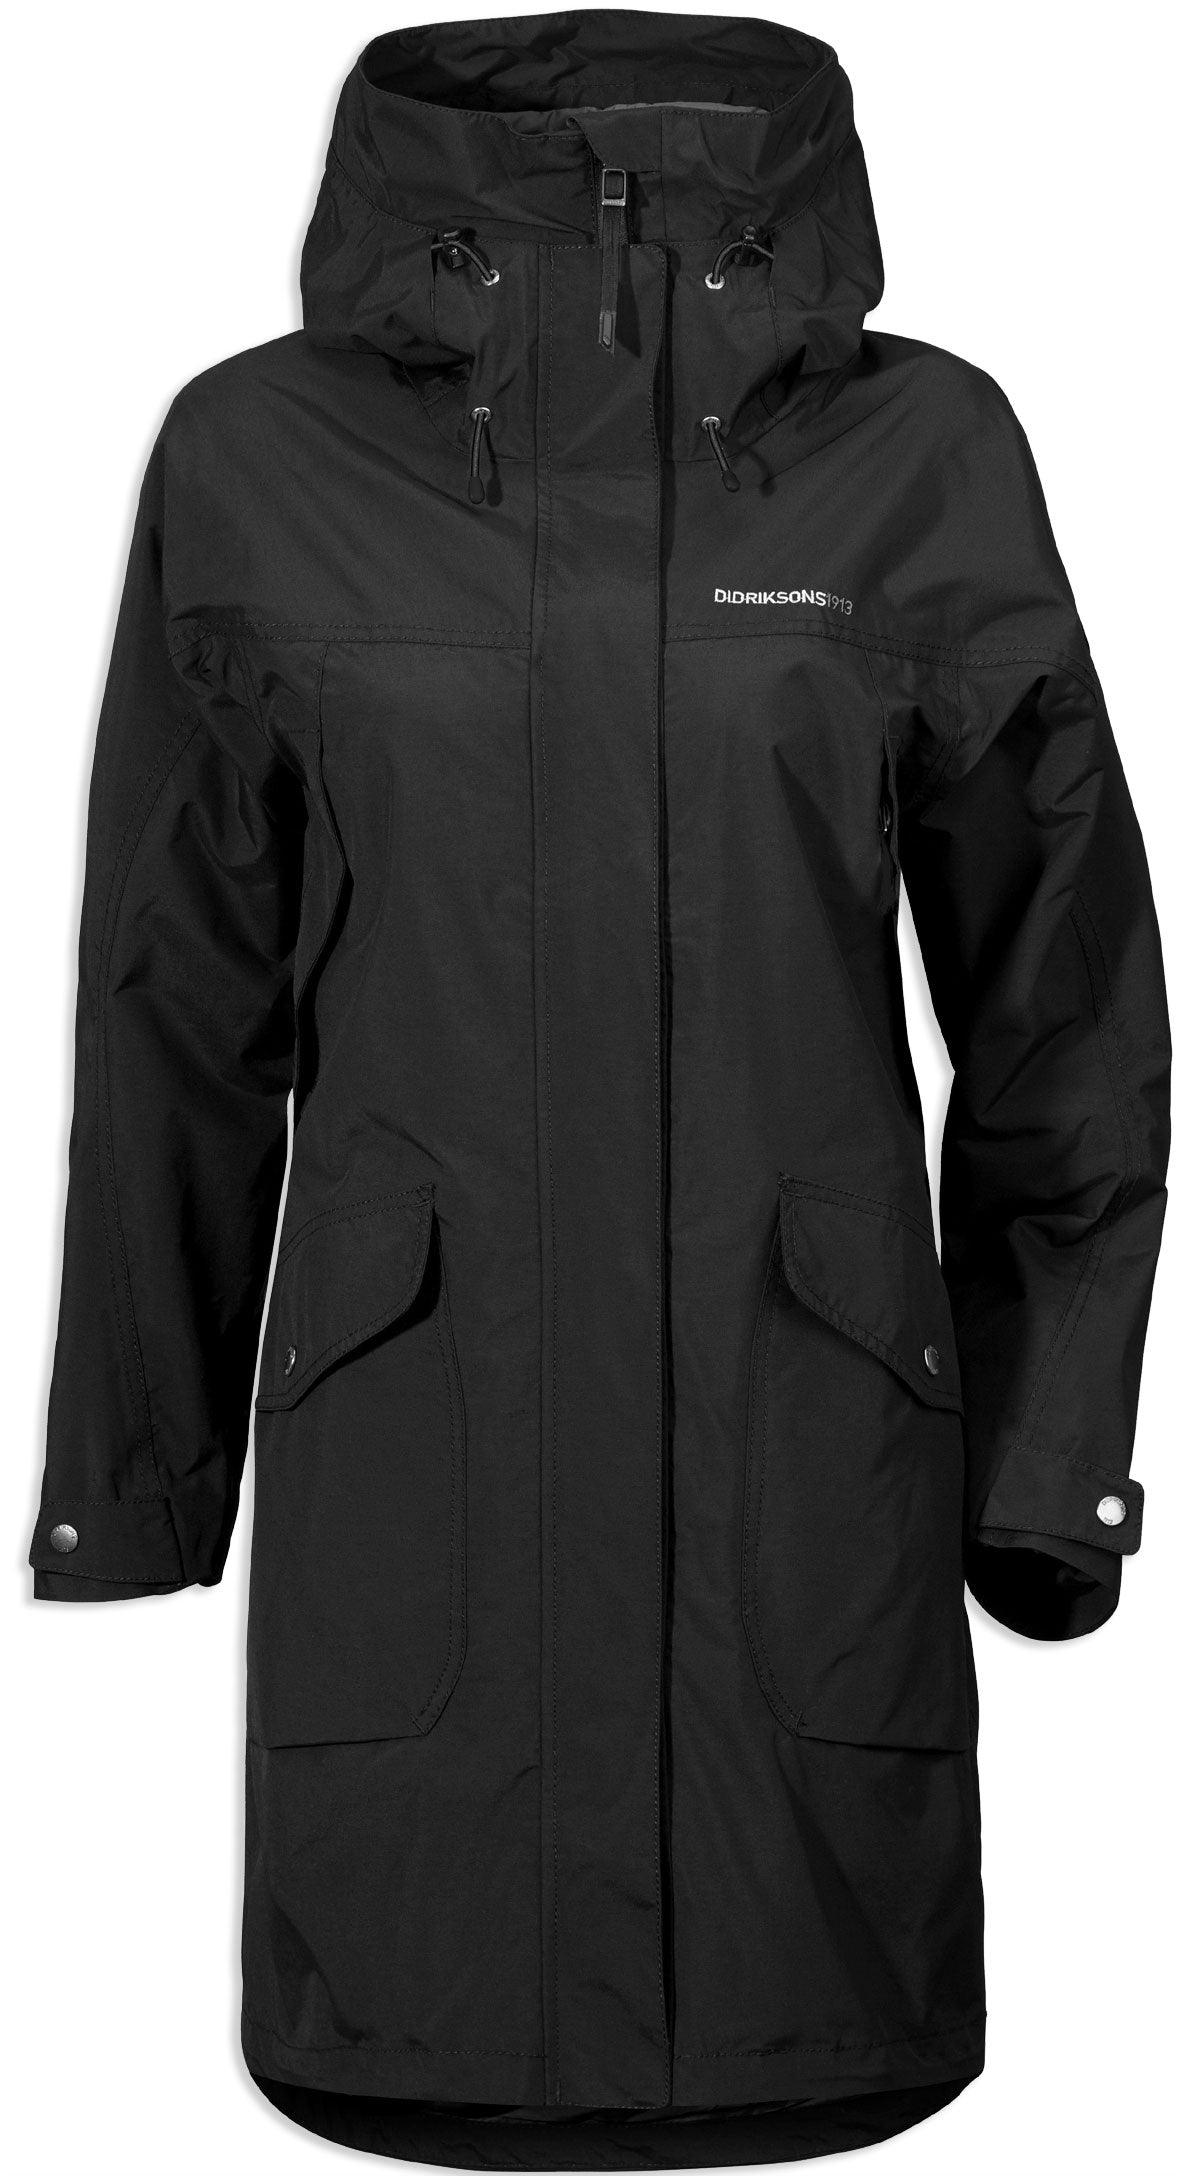 black Didriksons Ladies Thelma Waterproof parka coat